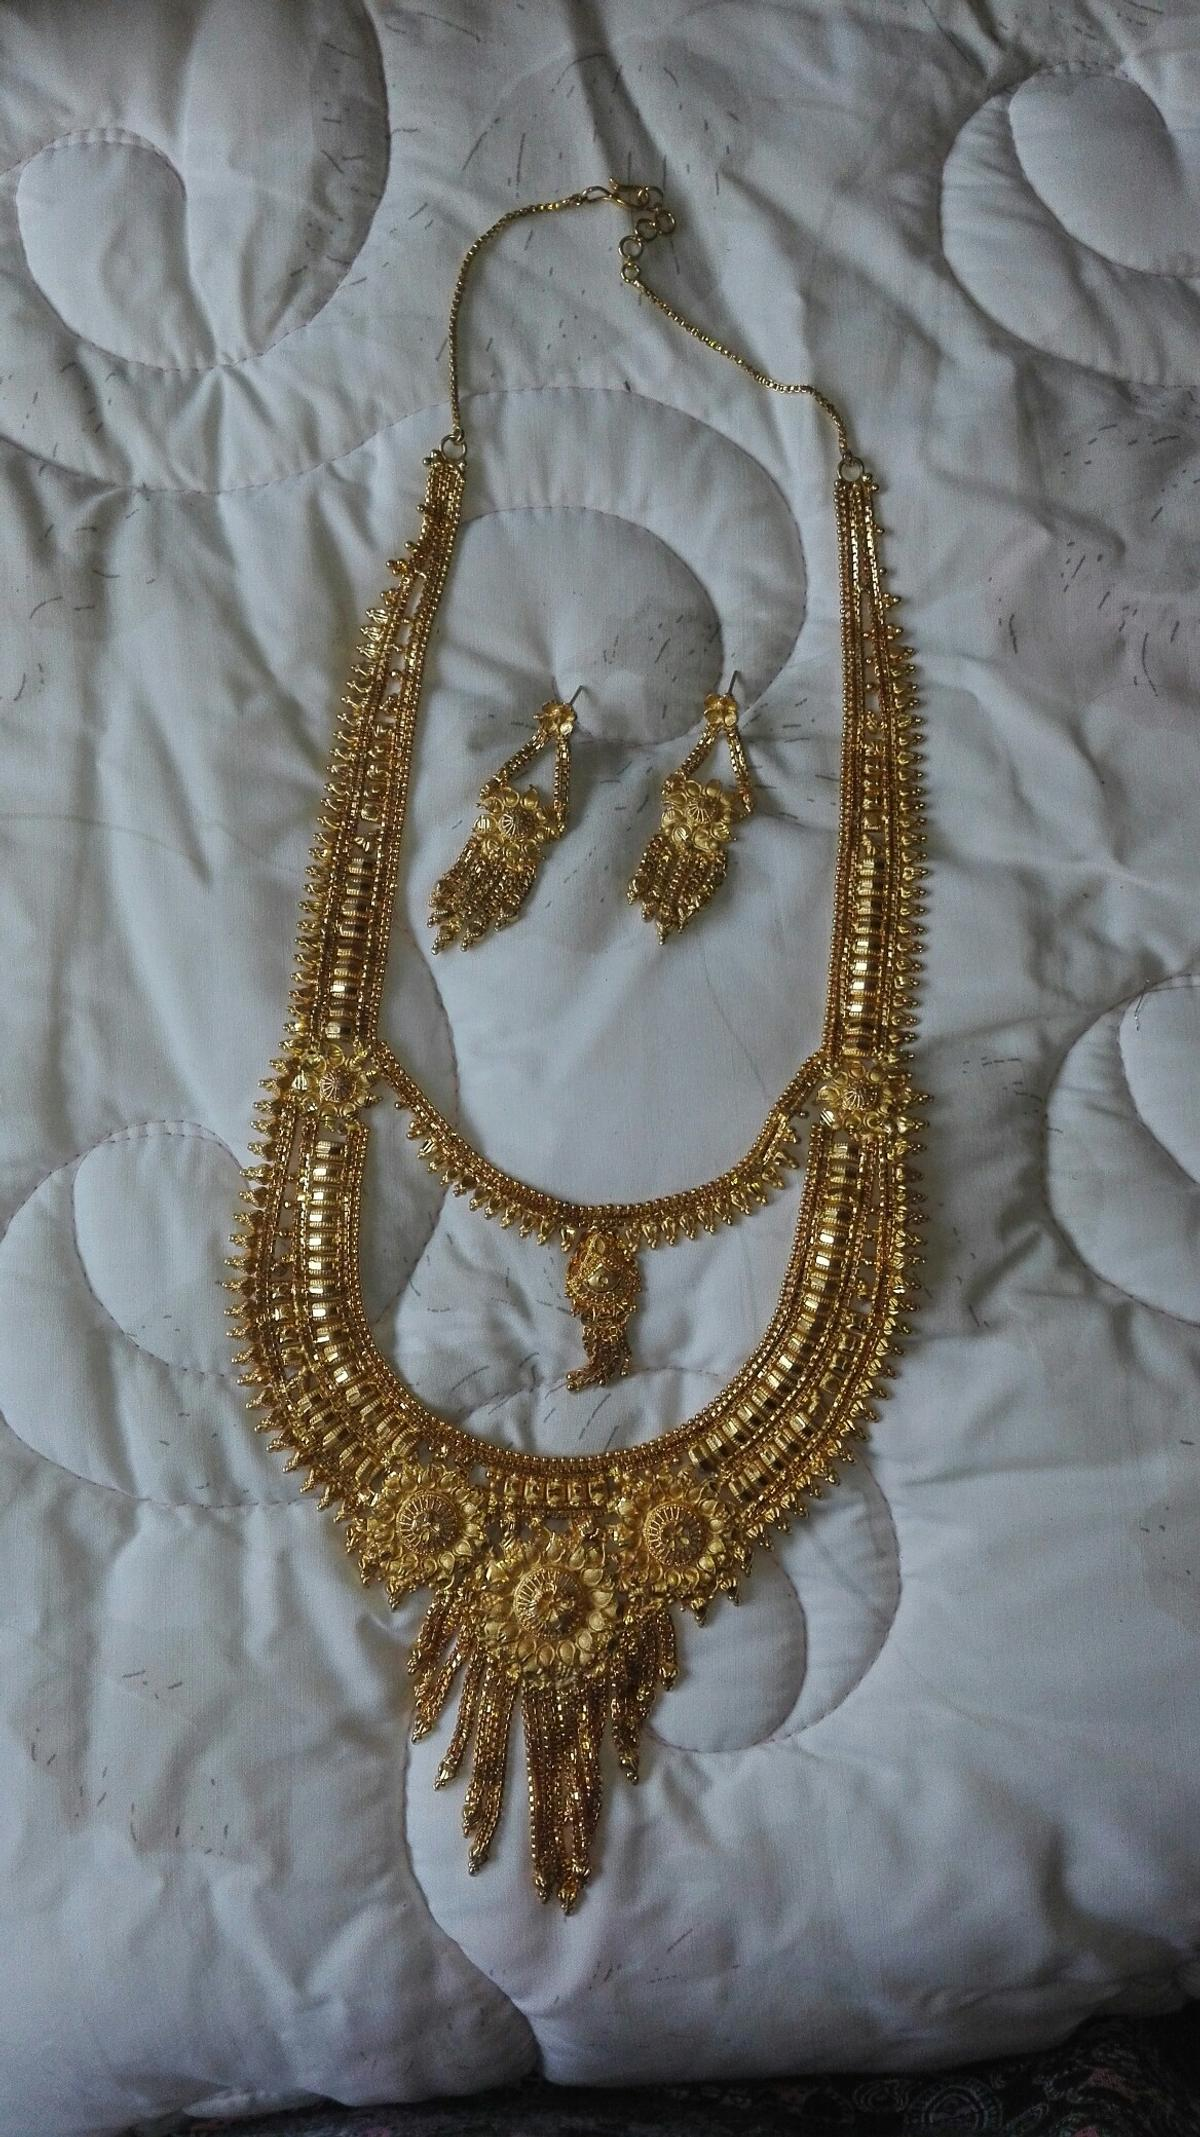 Indian Gold Plated Necklace Jewellery In Ls12 Leeds For 35 00 For Sale Shpock